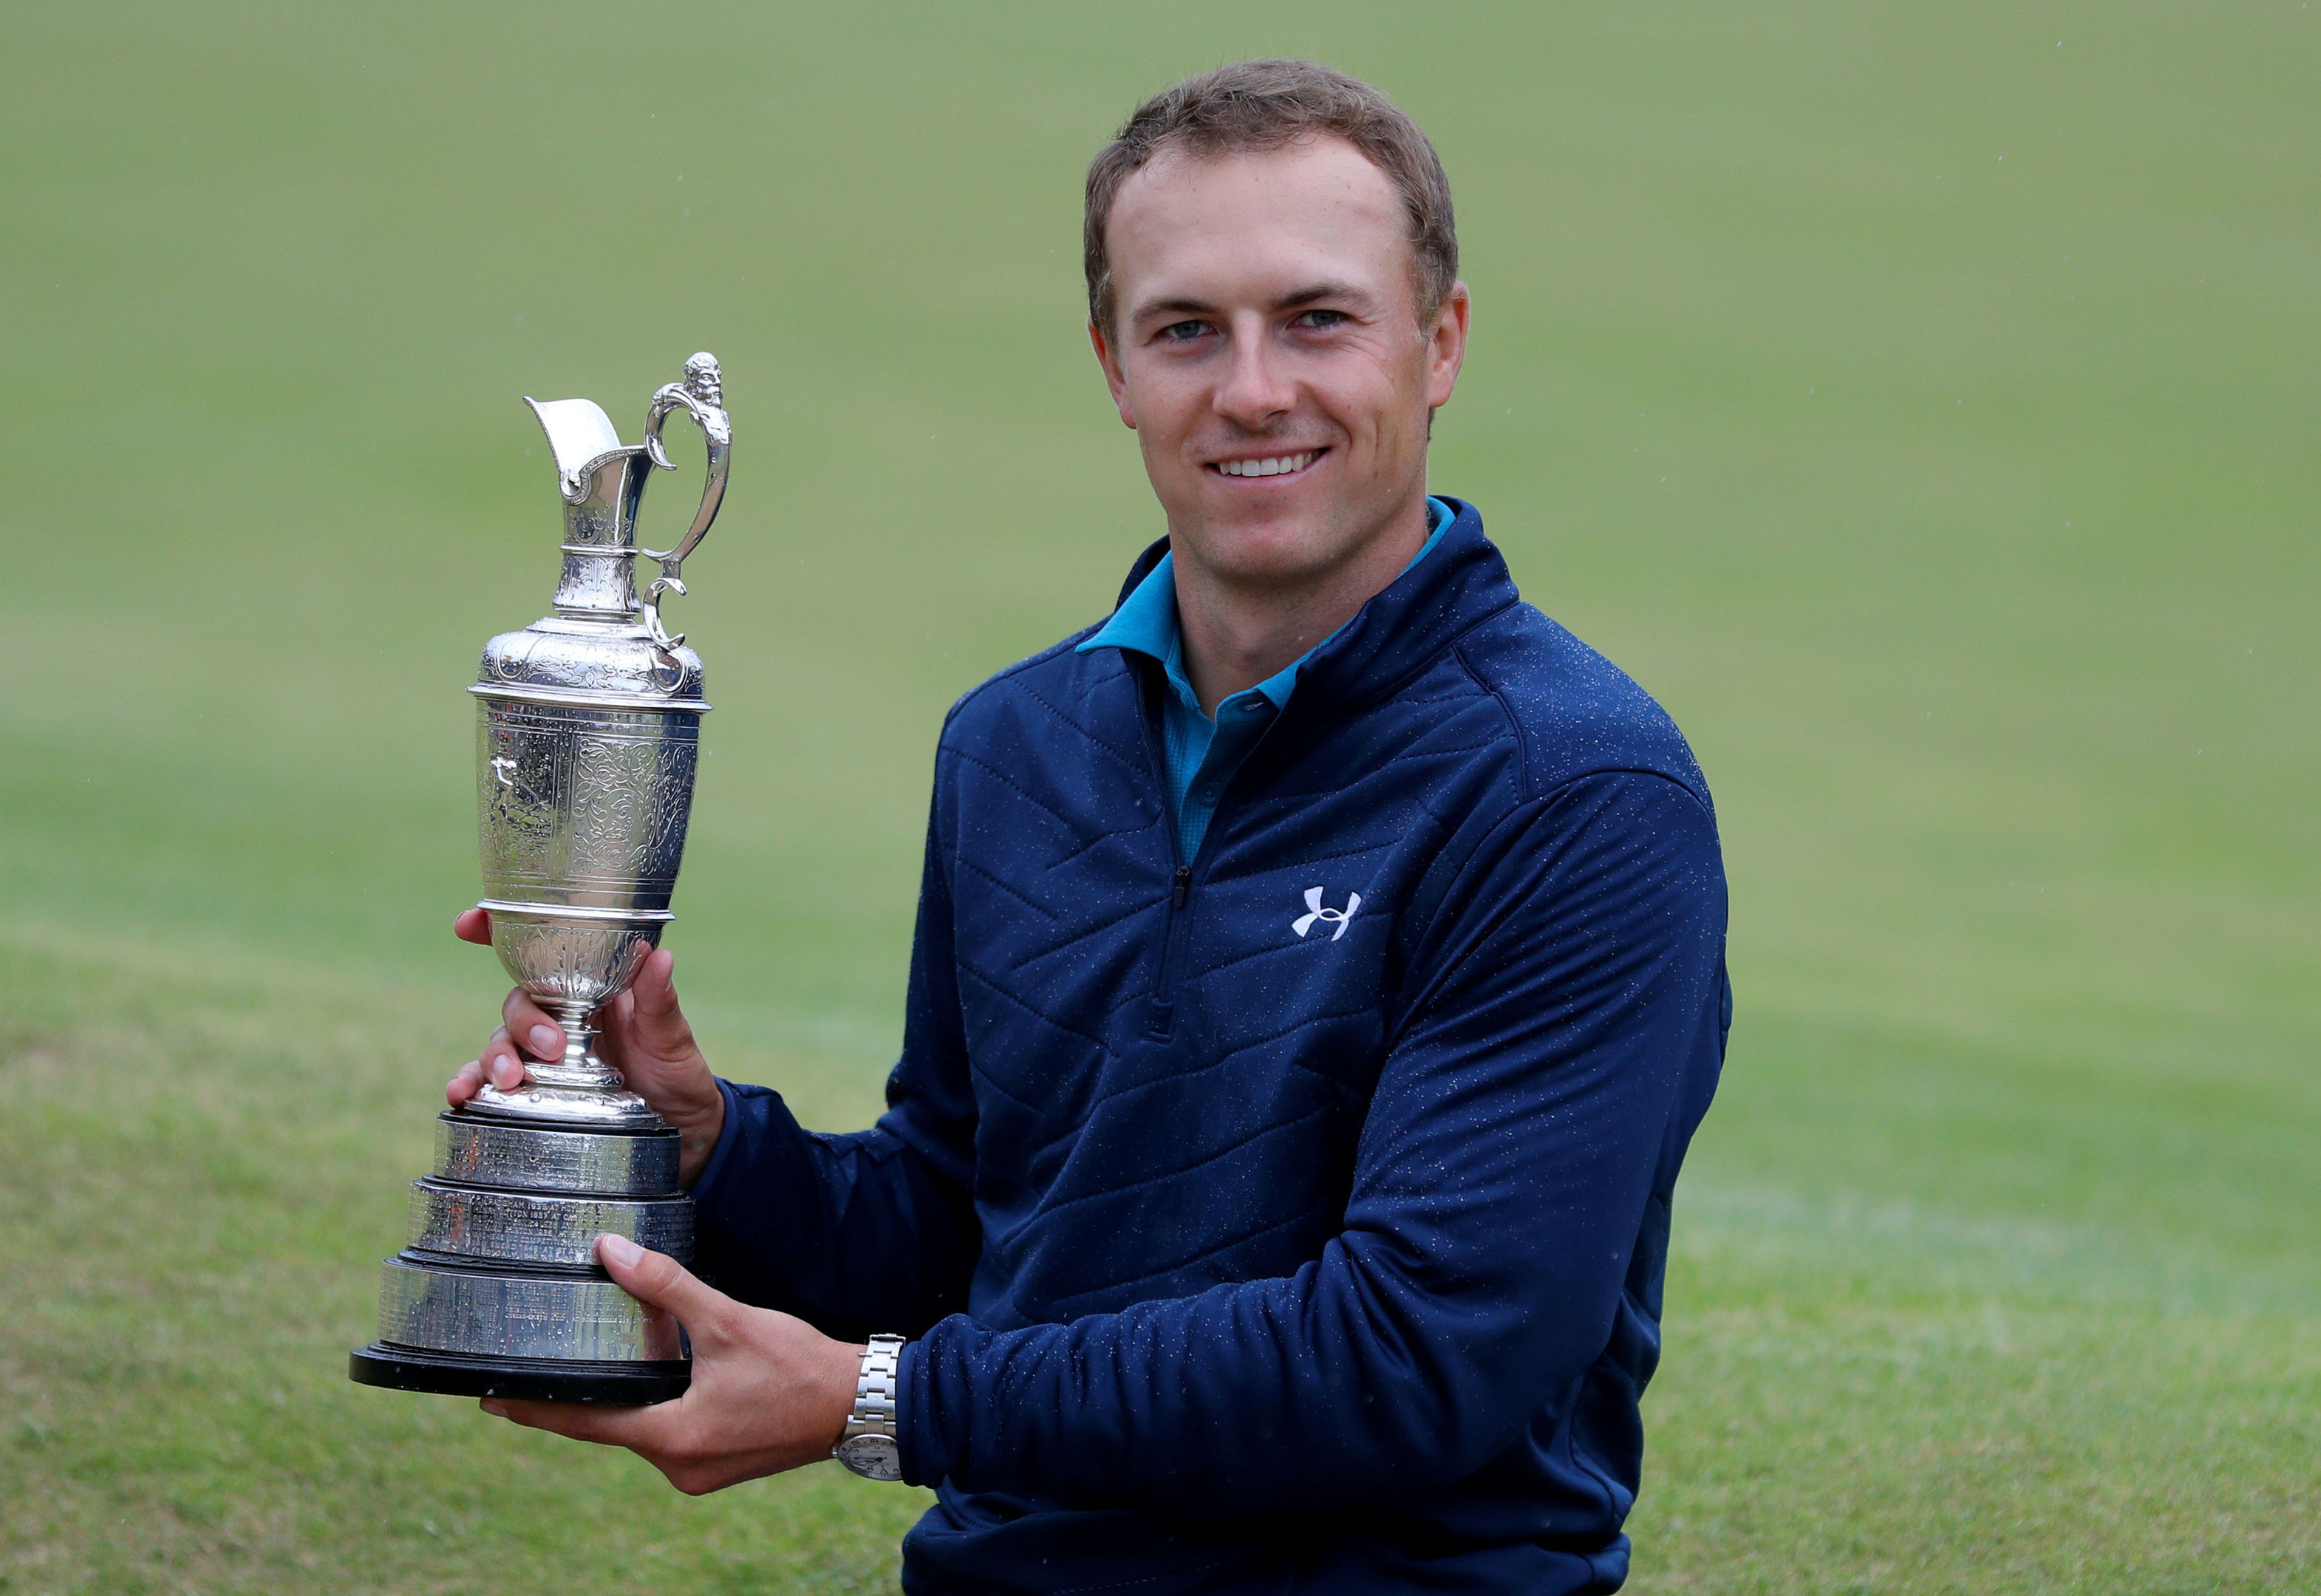 Jordan Spieth with the Claret Jug after his dramatic Open Championship victory.